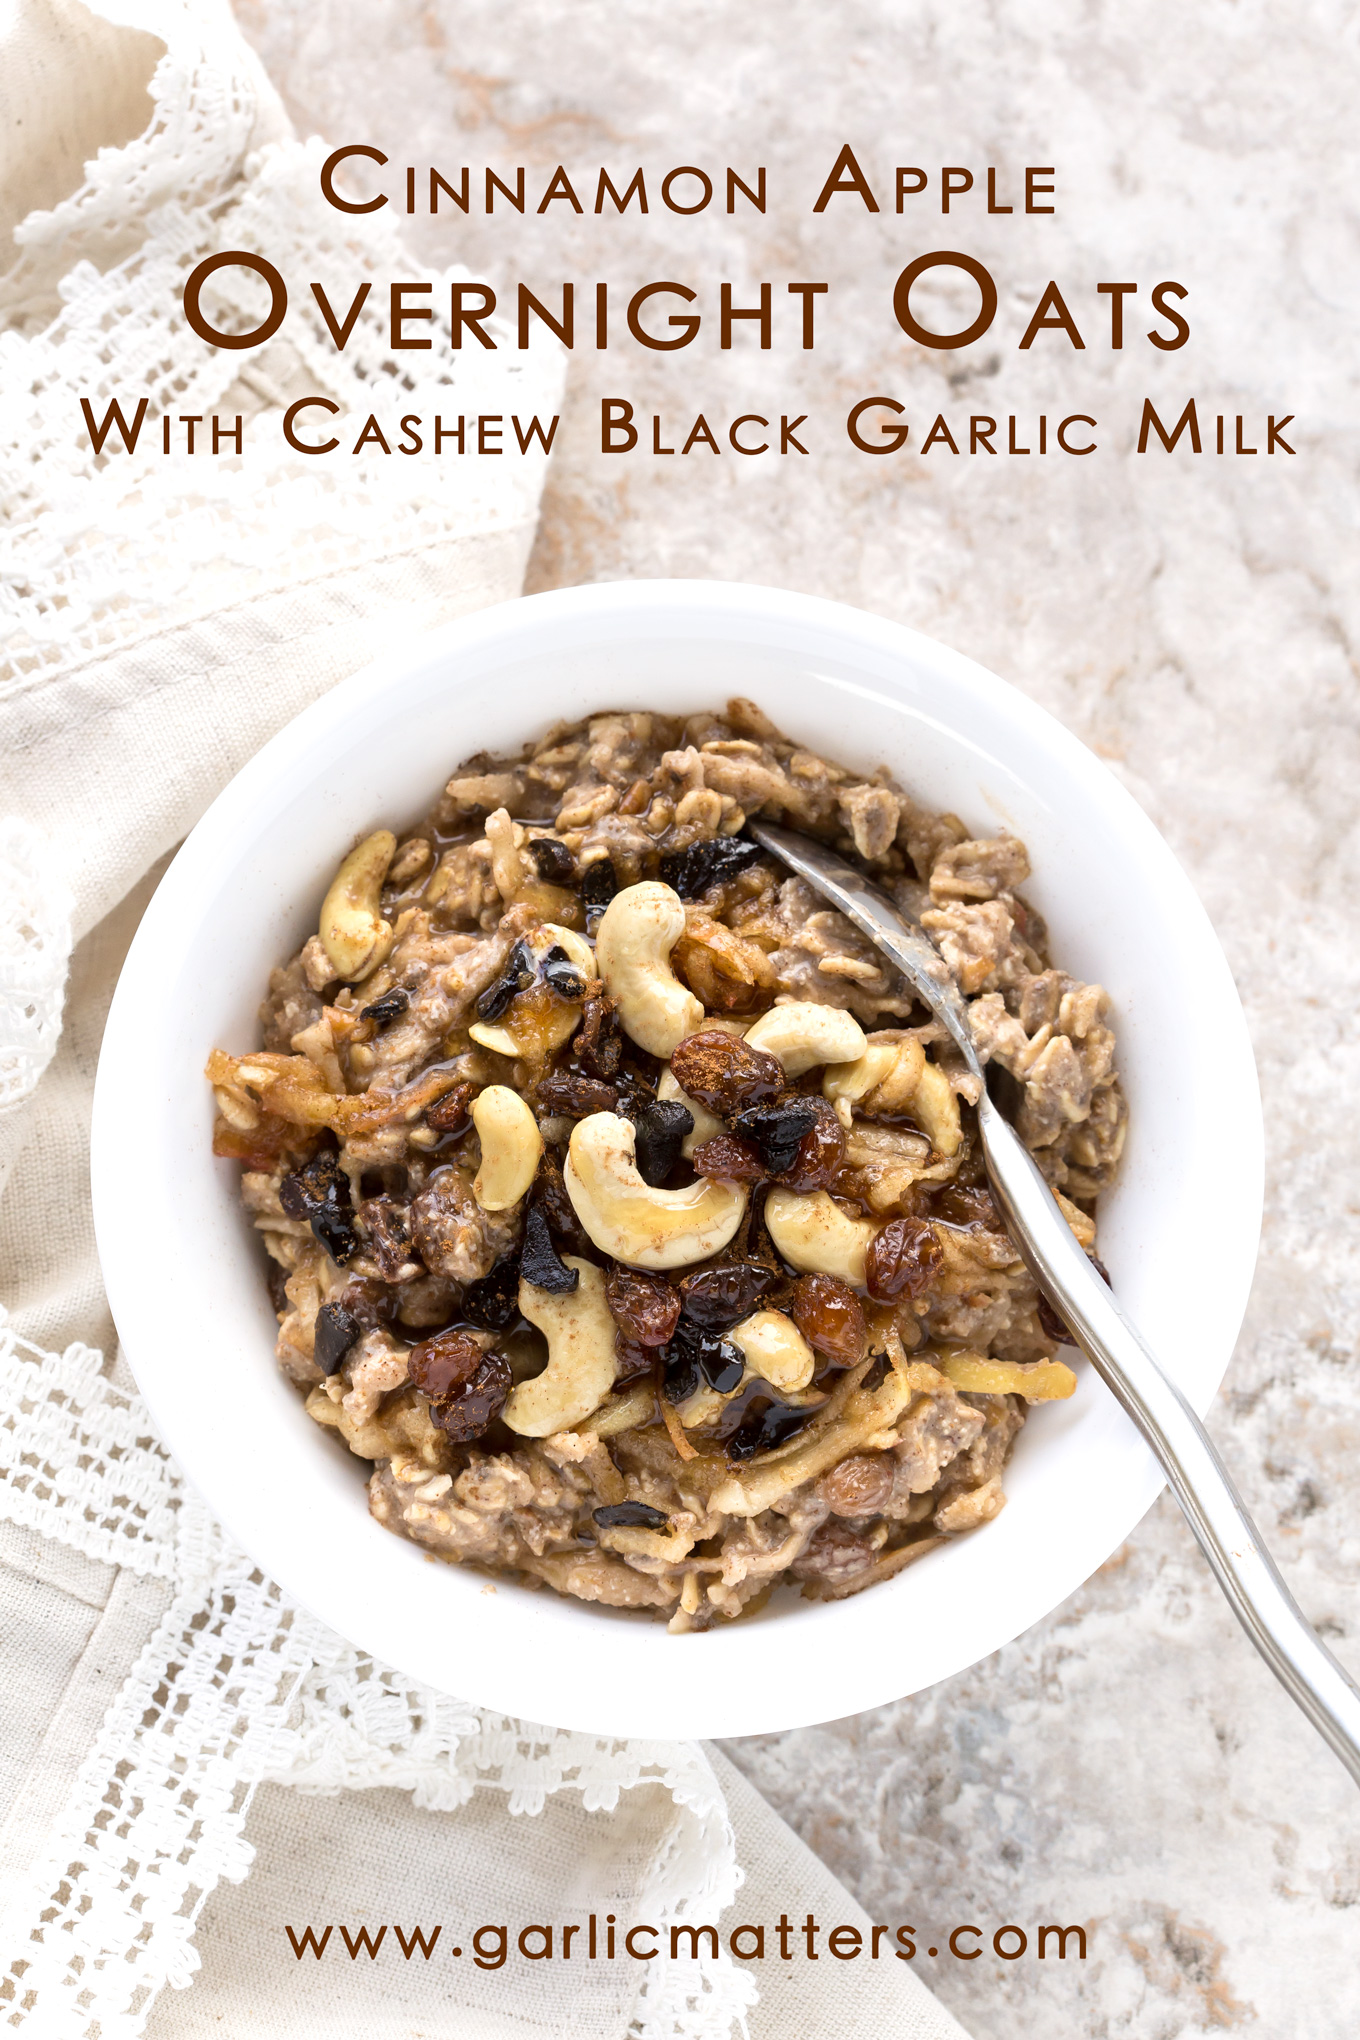 Cinnamon Apple Overnight Oats With Cashew Black Garlic Milk is a delicious vegan breakfast packed with wholesome goodness. Yup! You got it right the first time and it is not what you think it is! Black garlic has no kick or pungency! Instead it offers you a powerhouse of antioxidants and amazing balsamic, chocolate, nutty and caramel flavour puzzle I bet you'll want more of! No garlic breath, only amazing tasting breakfast. Kick start your day with this pure and healthy energy free of gluten, dairy and refined sugar.